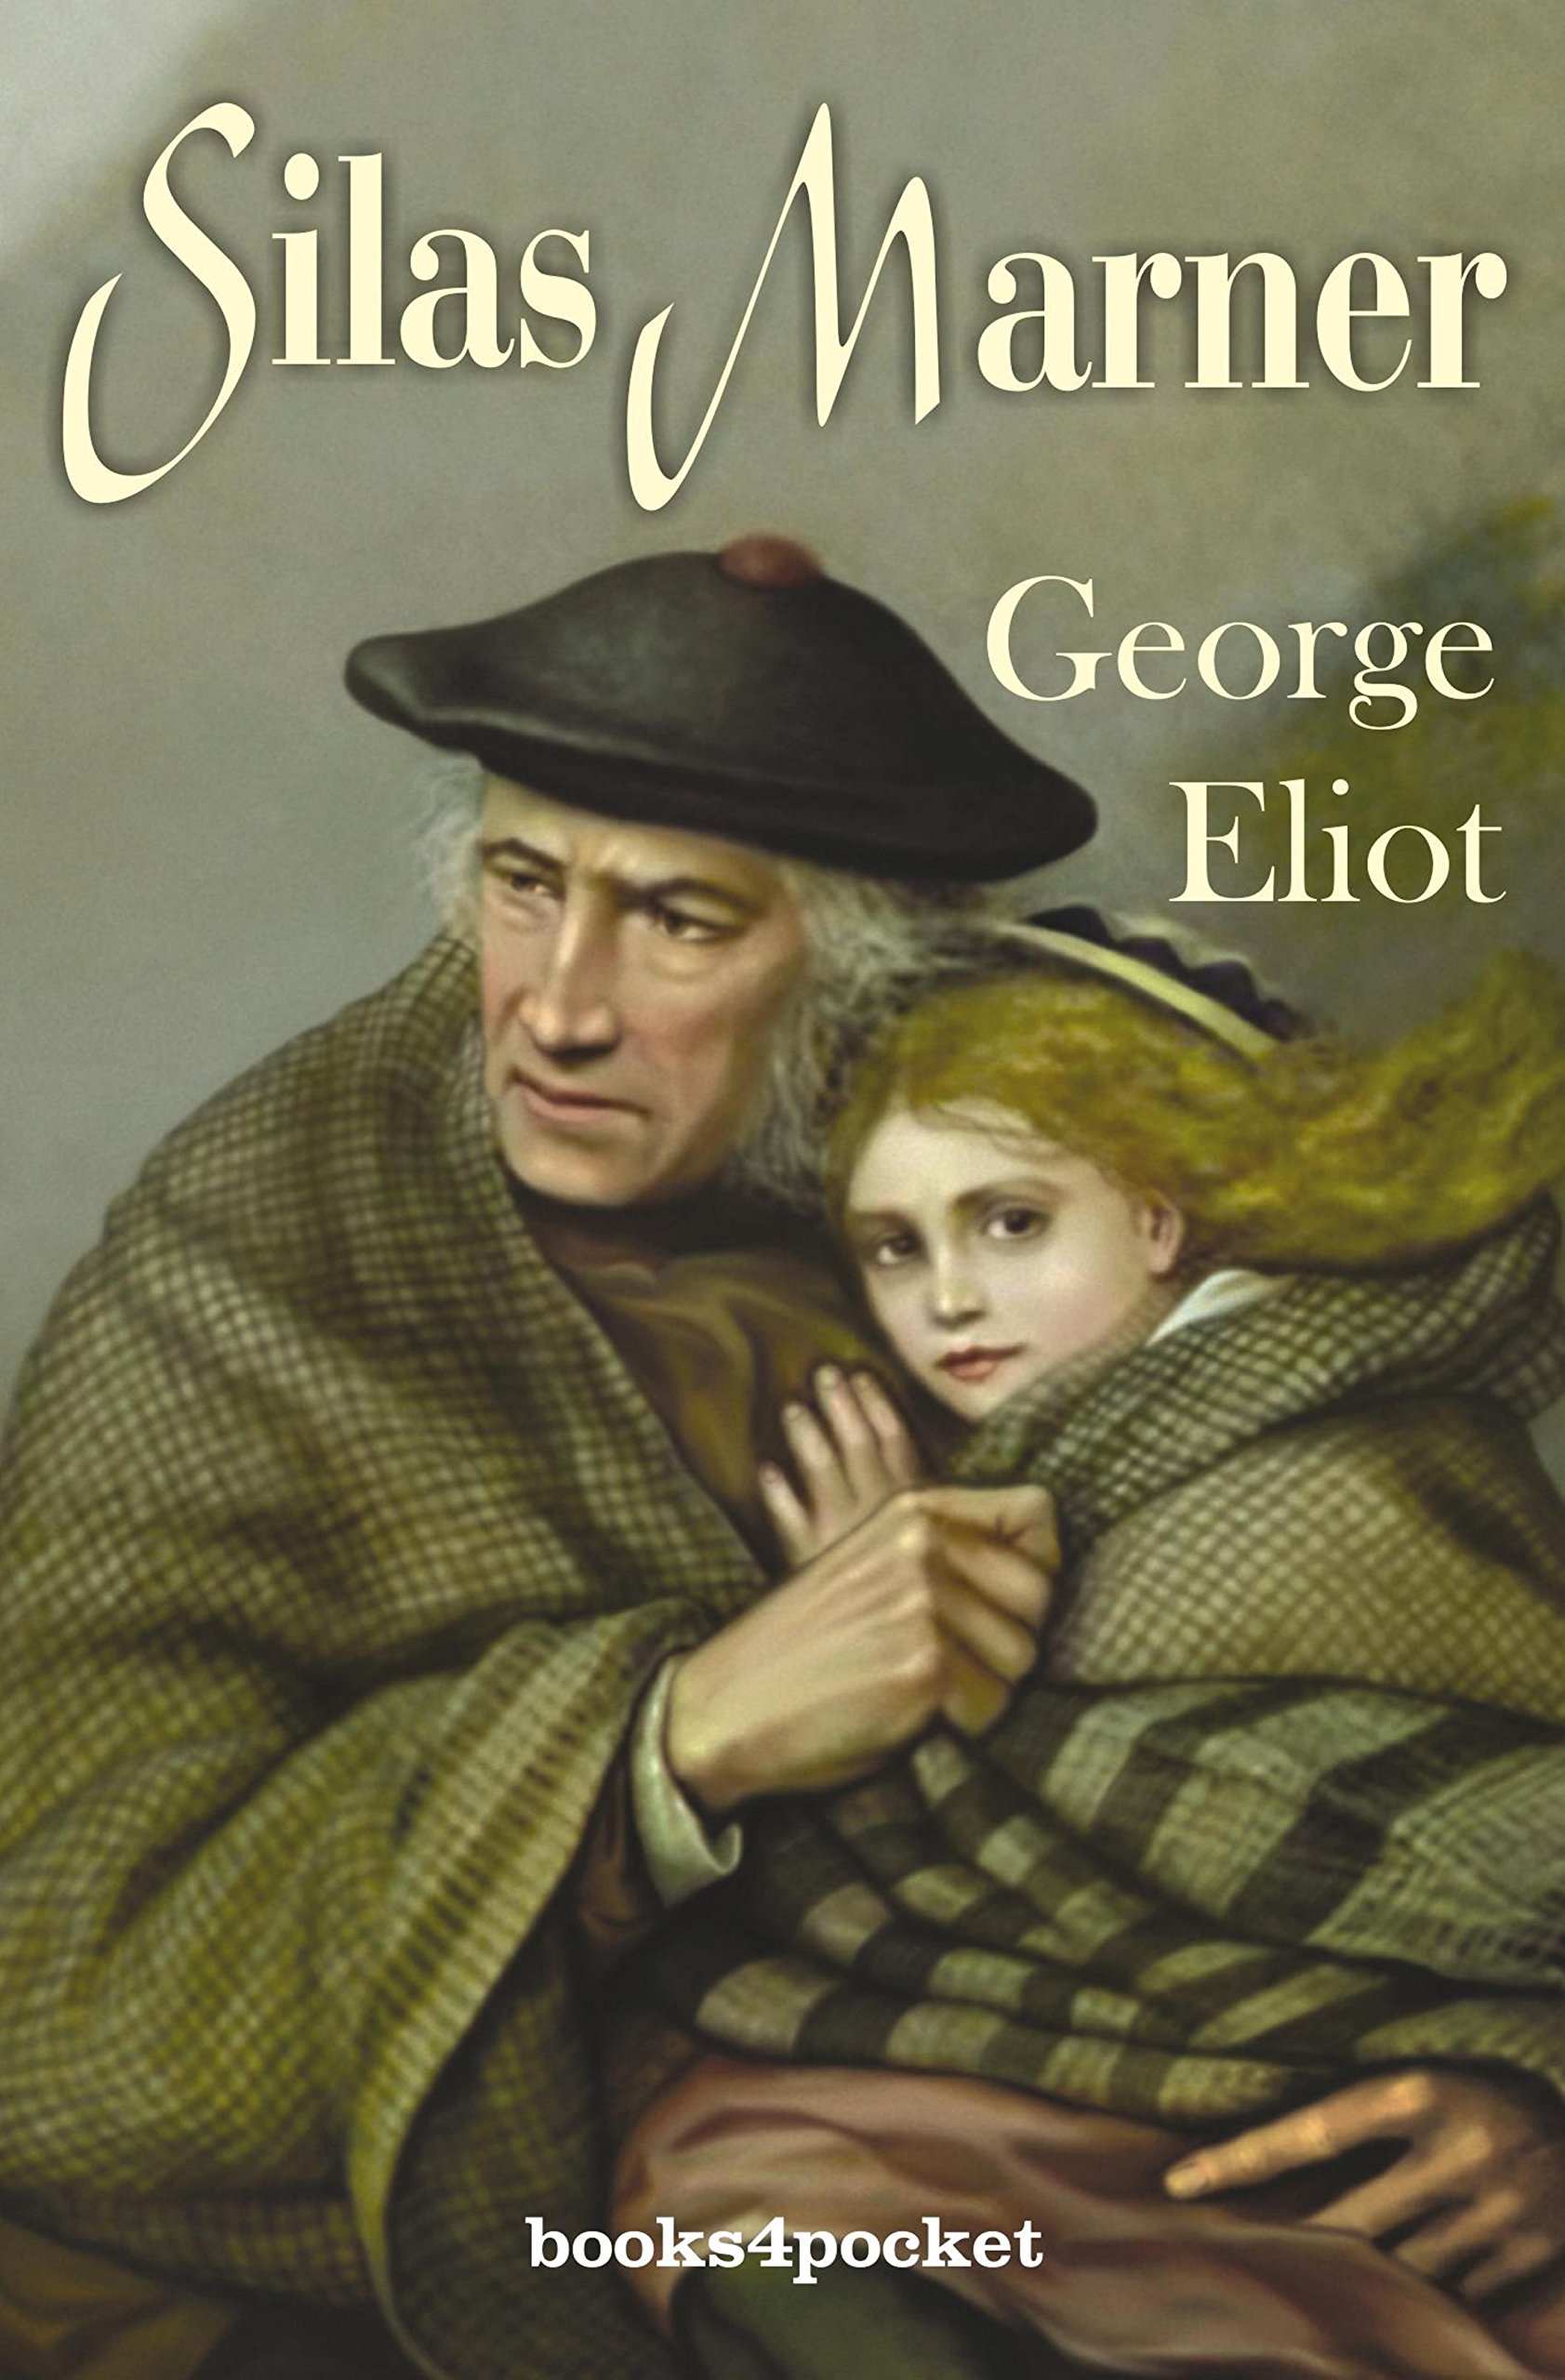 An analysis of george eliots novel silas marner the weaver of raveloe